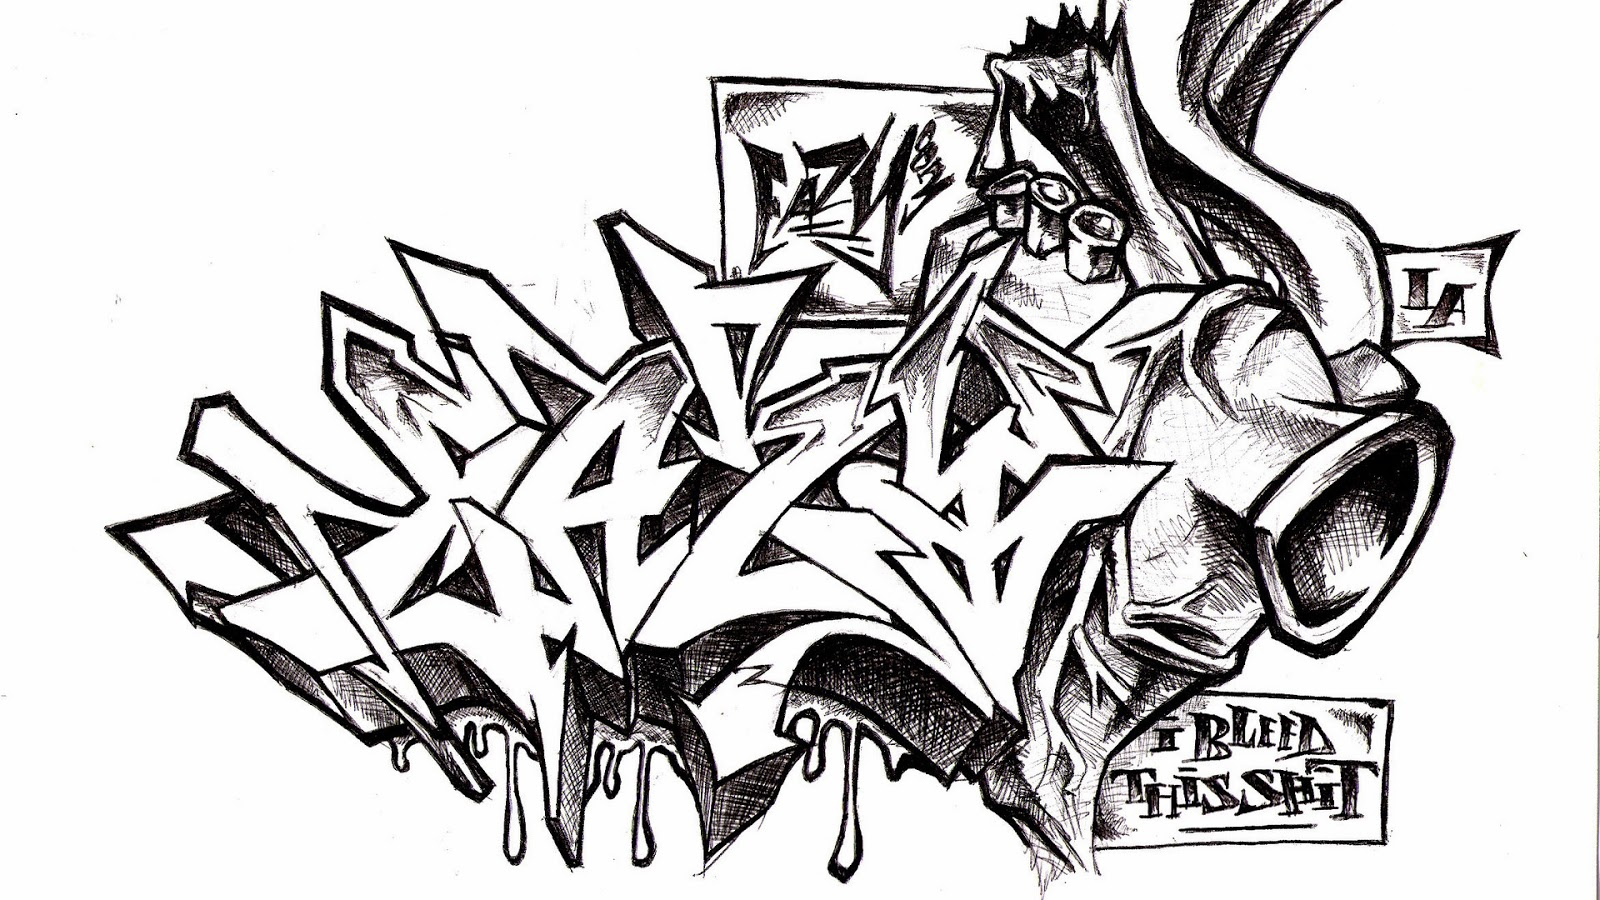 Graffiti Lettering Cool Characters Alphabets Fonts Urbanist